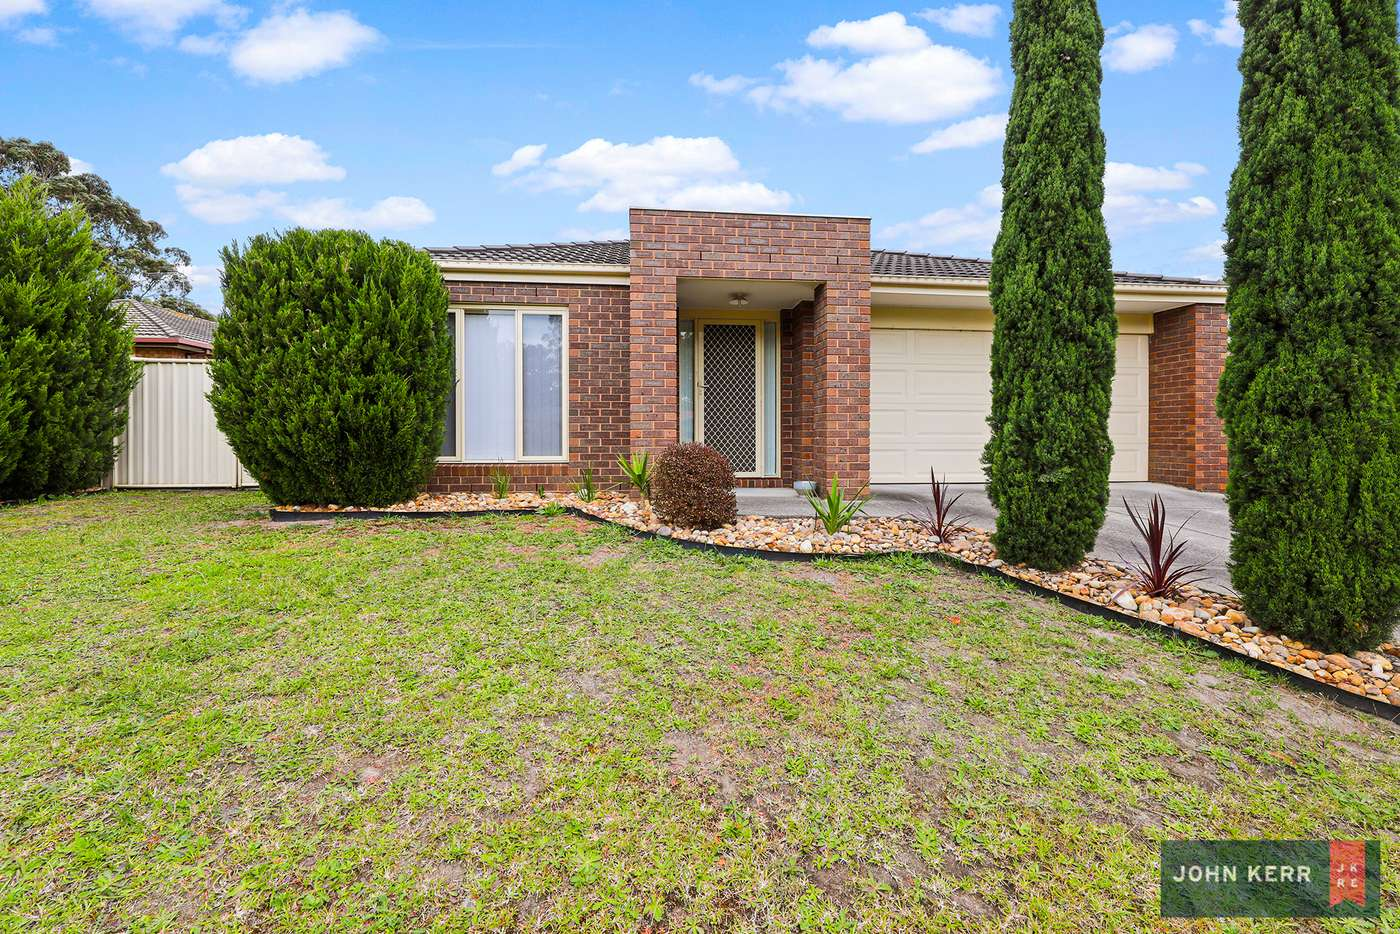 Main view of Homely house listing, 4 Howitt Court, Newborough VIC 3825